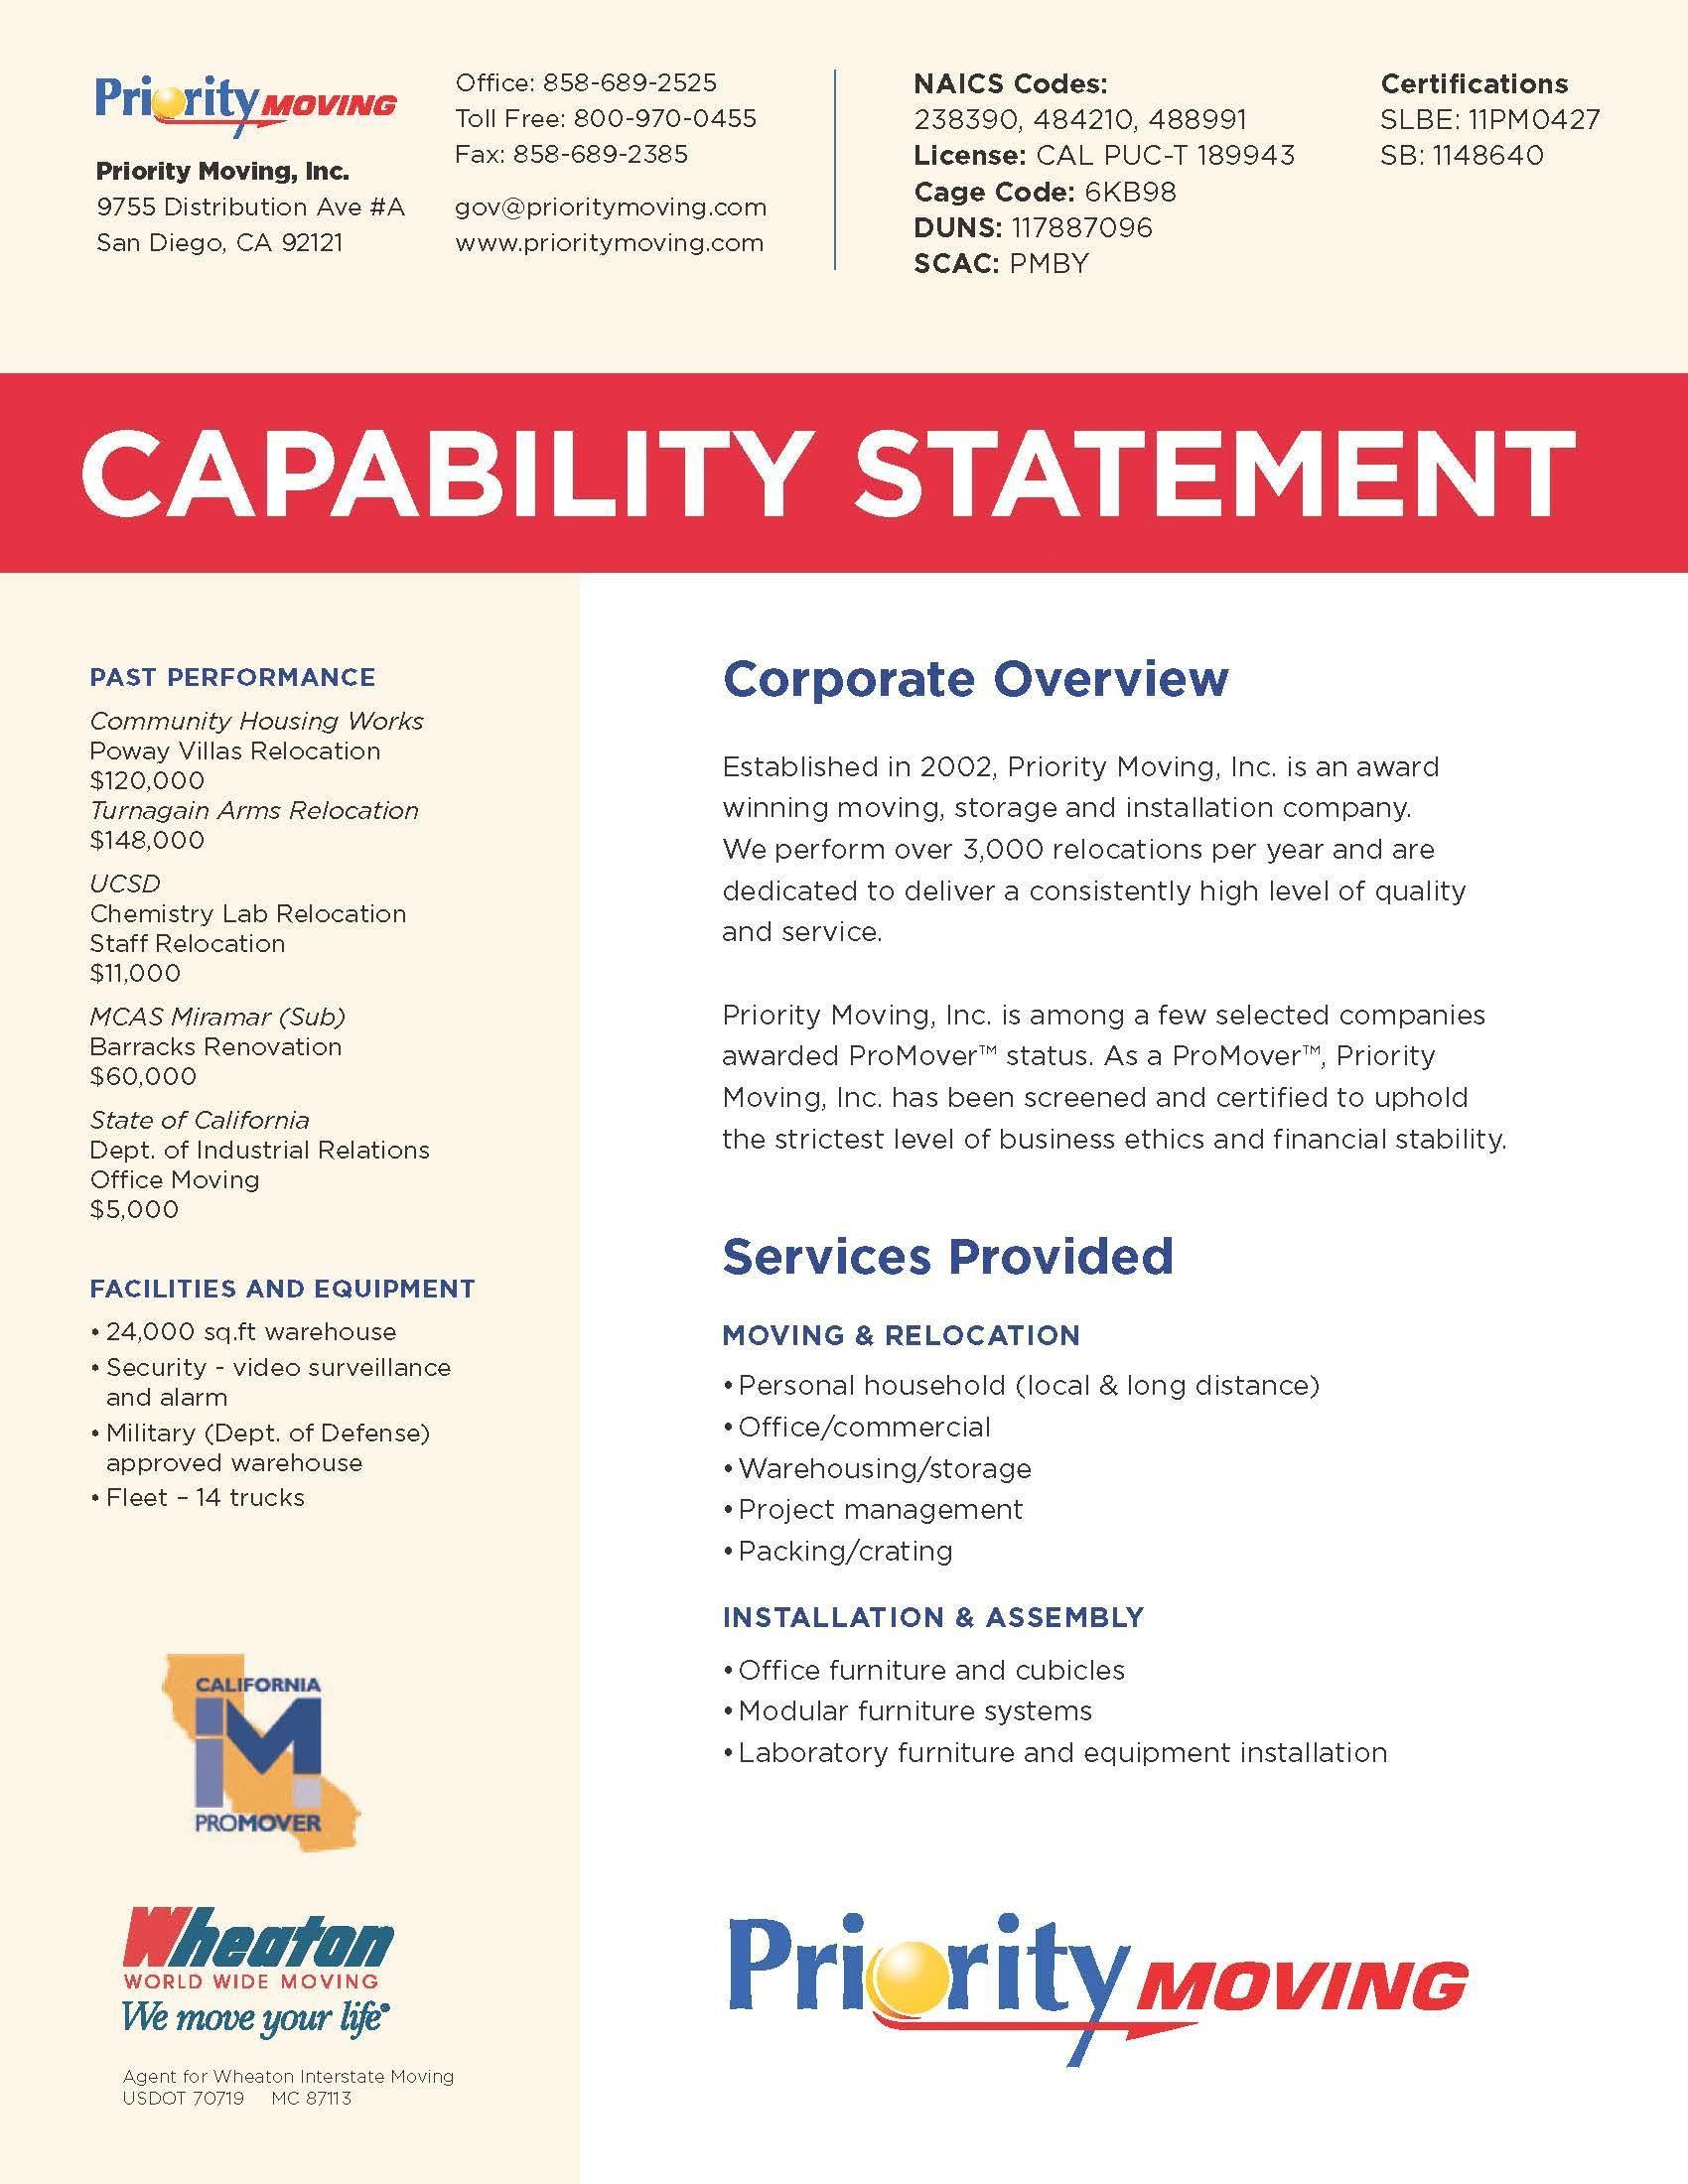 000 Unbelievable Capability Statement Template Free Example  Word Editable DesignFull